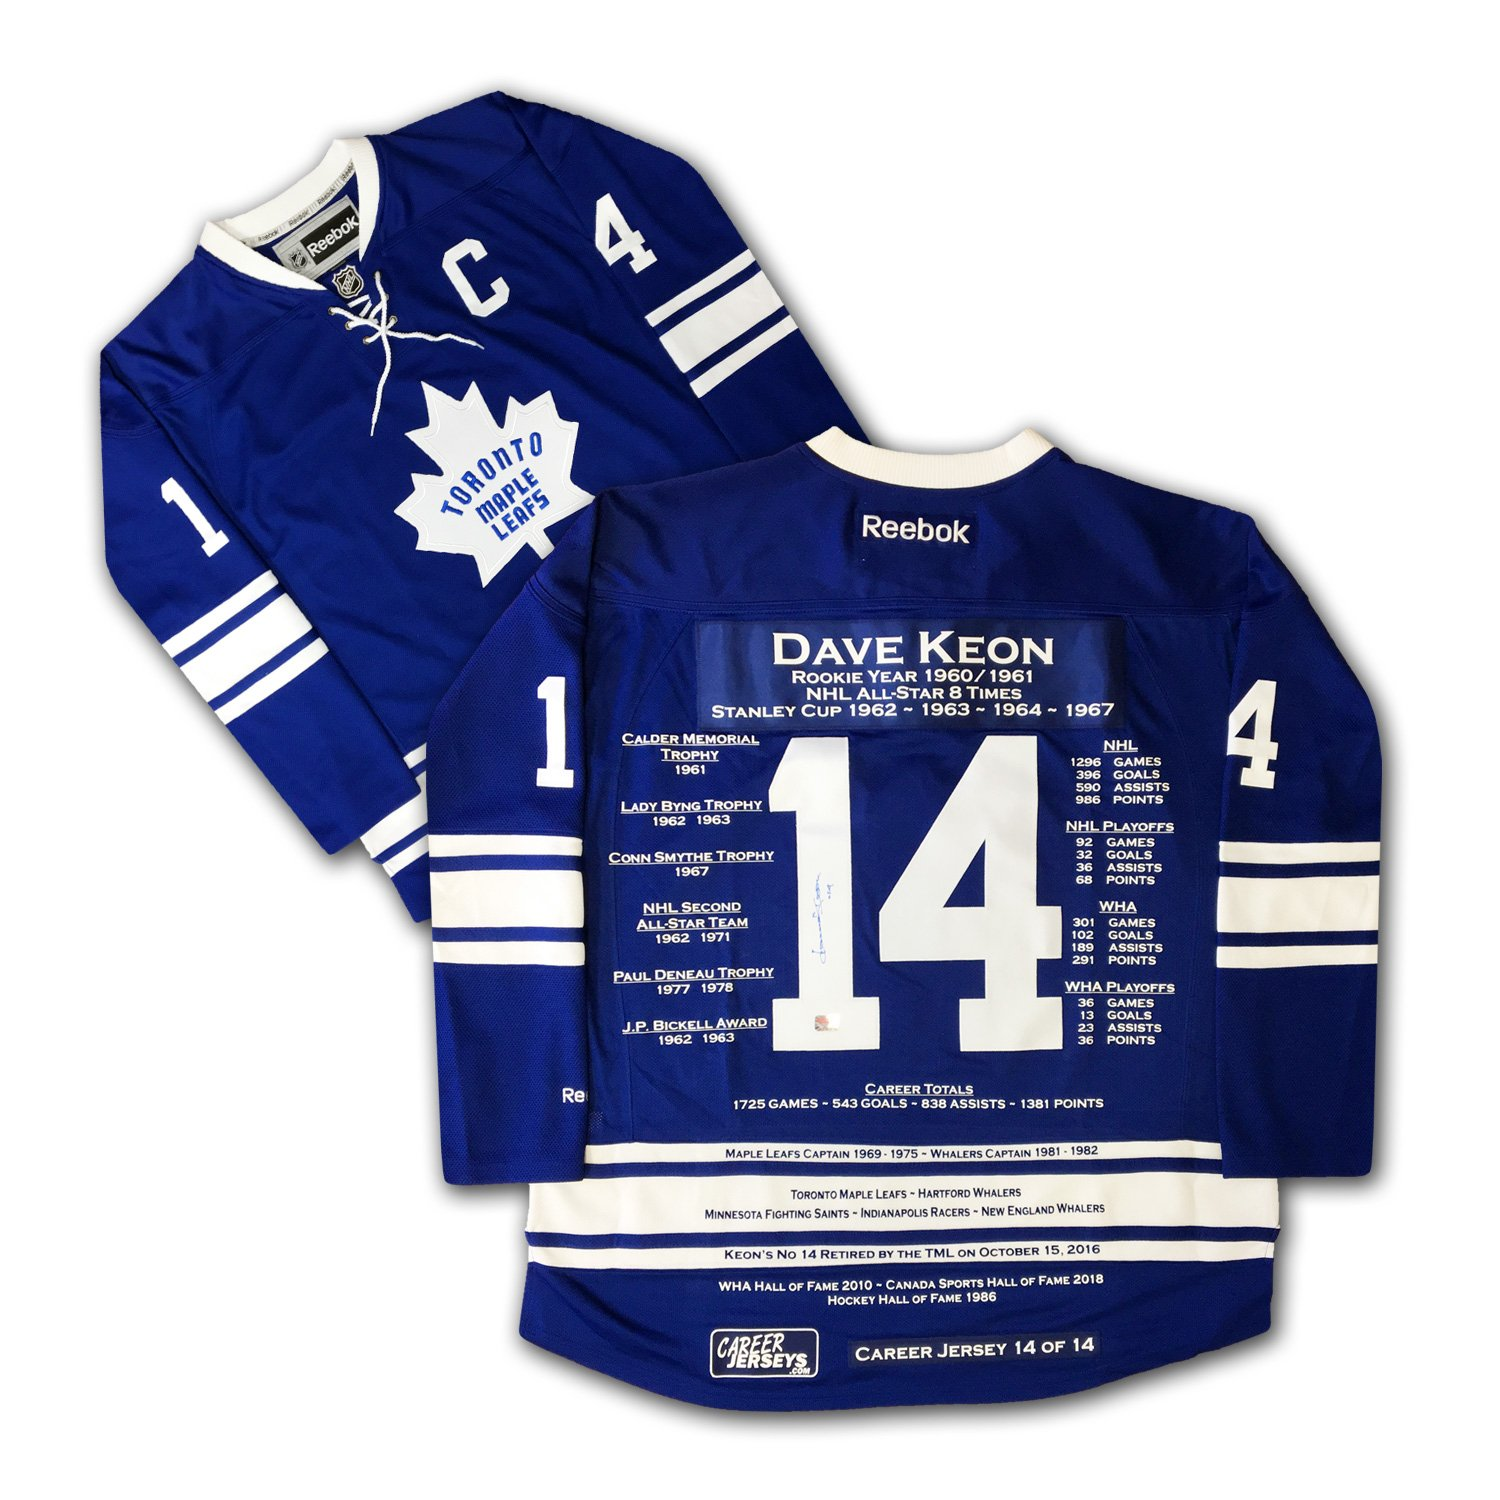 Dave Keon Career Jersey #14 of 14 - Autographed, LTD ED 14 - Toronto Maple Leafs